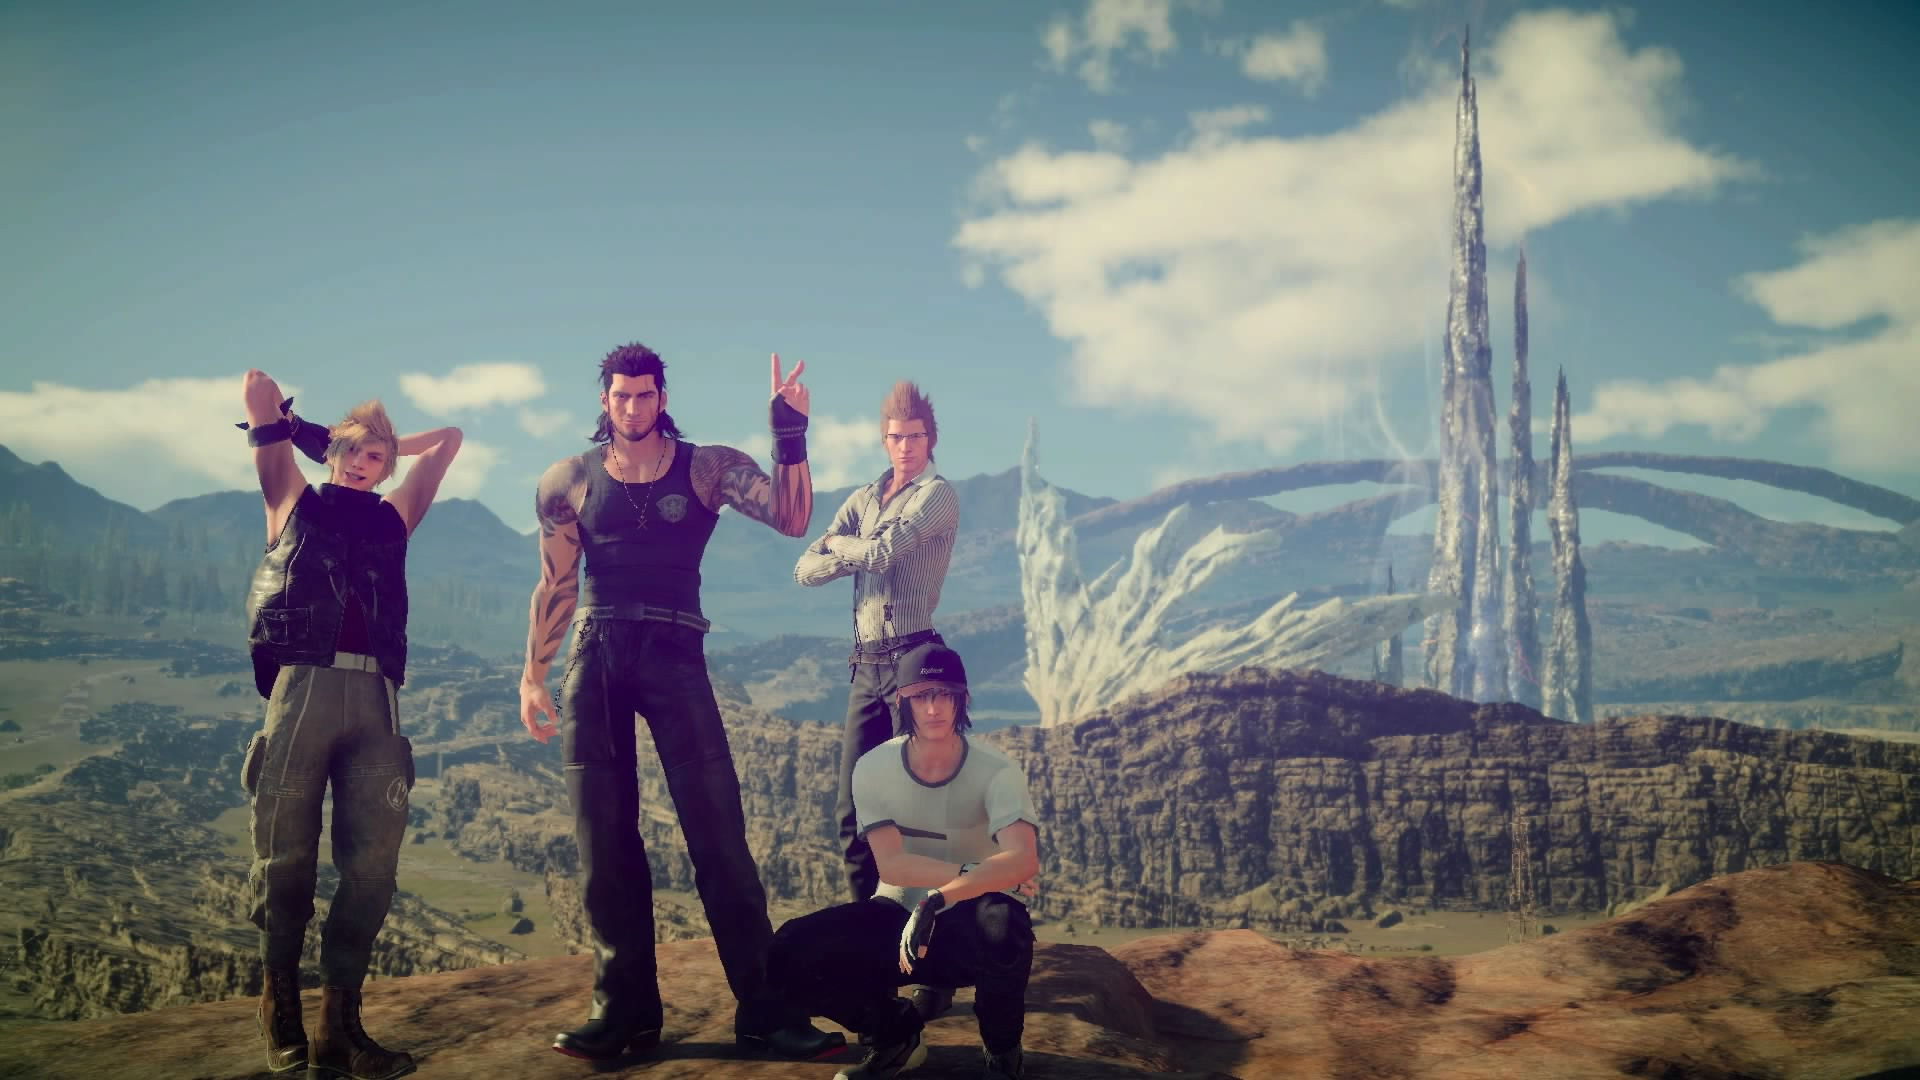 Noctis and his friends posing for a group photo.